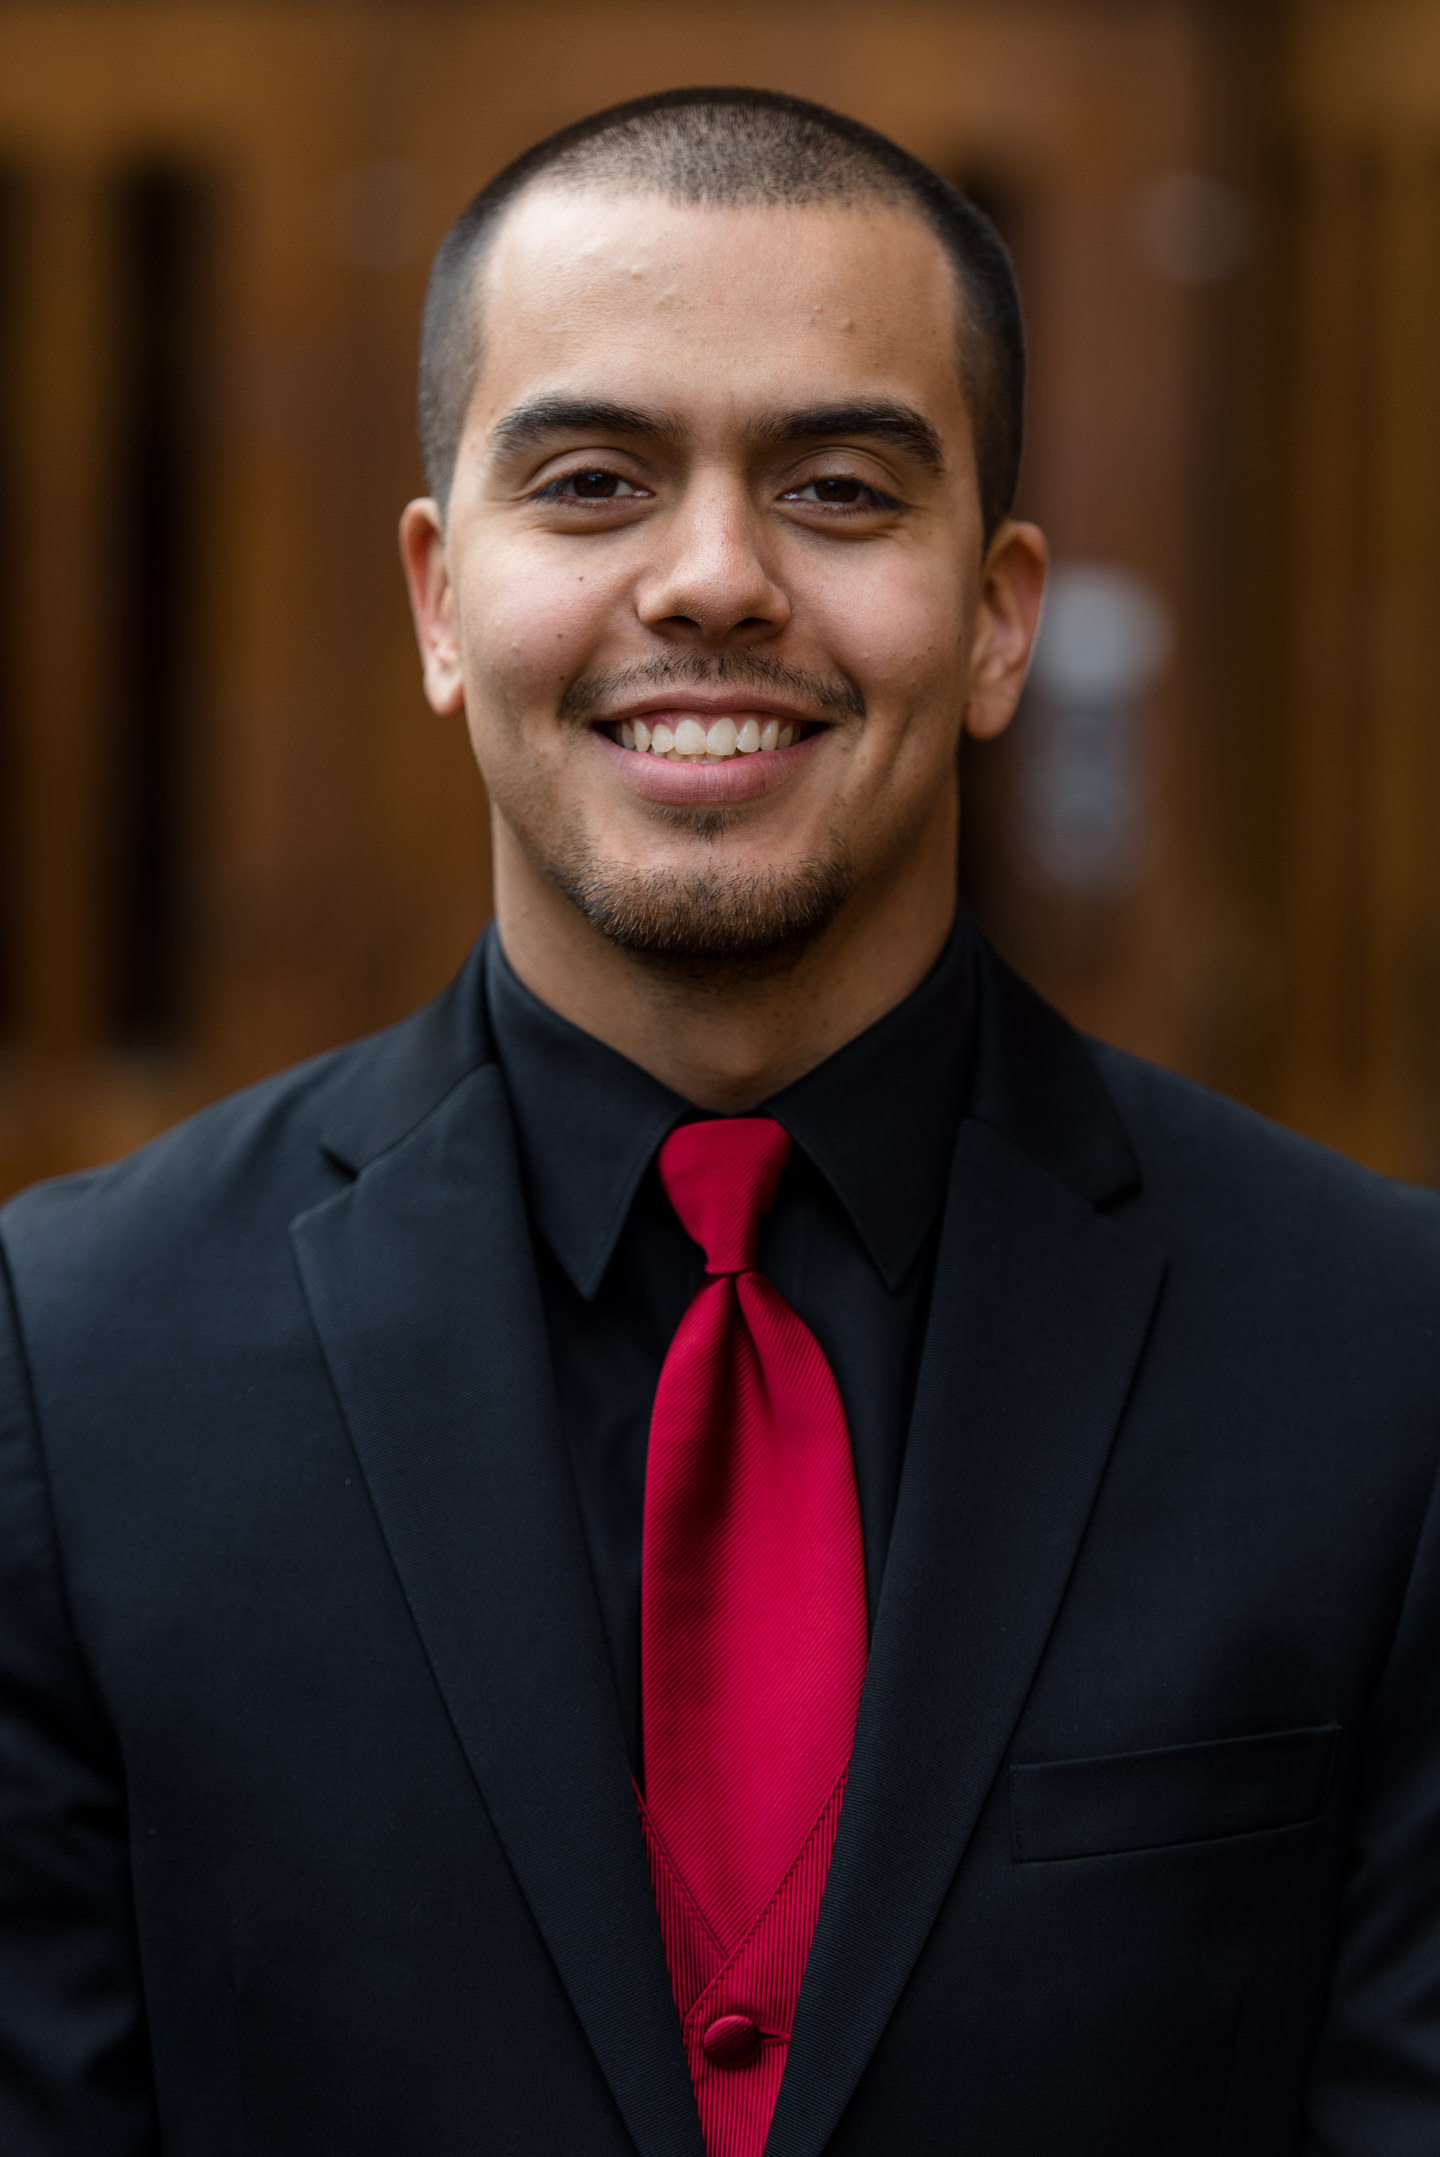 Mexican Groom First Look Portrait at University of Washington